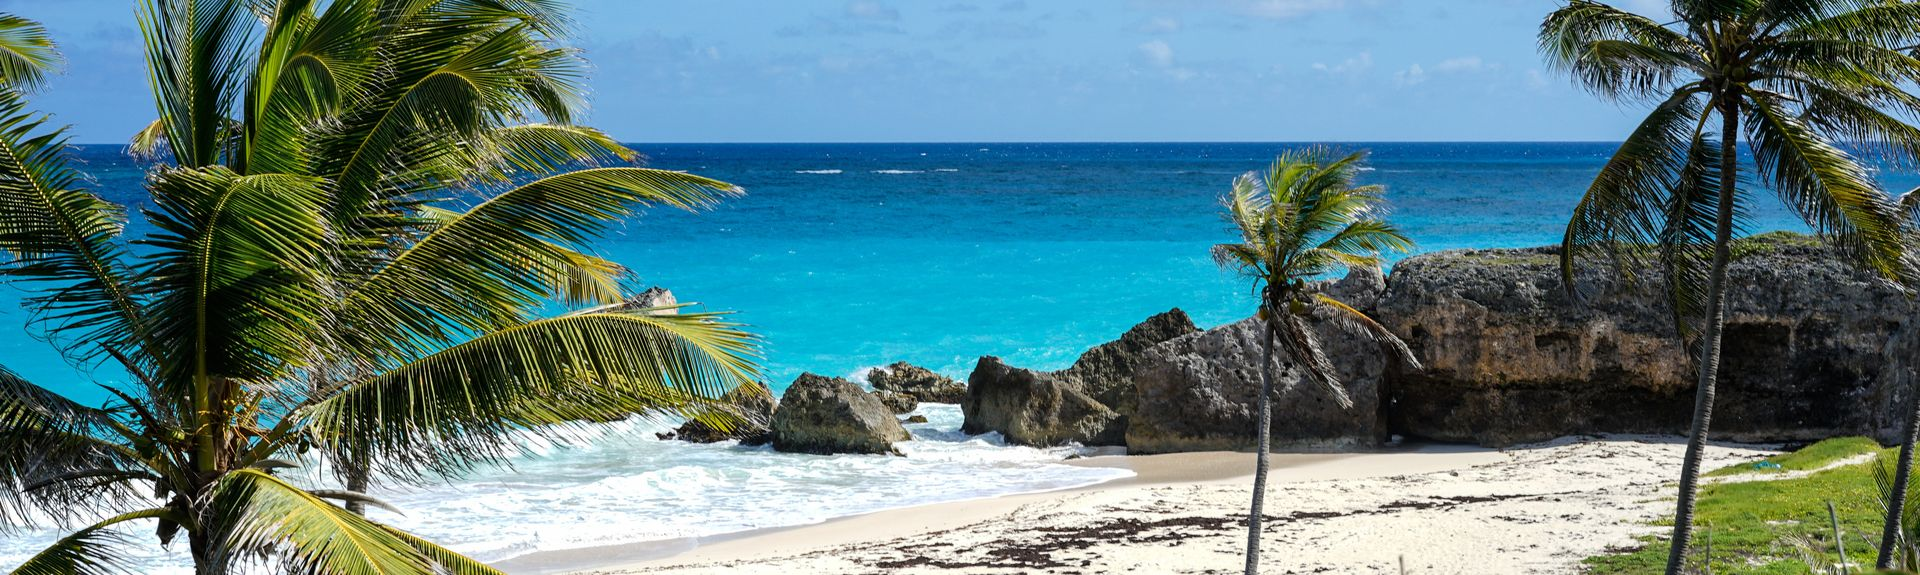 Paynes Bay Beach, Paynes Bay, St. James, Barbados